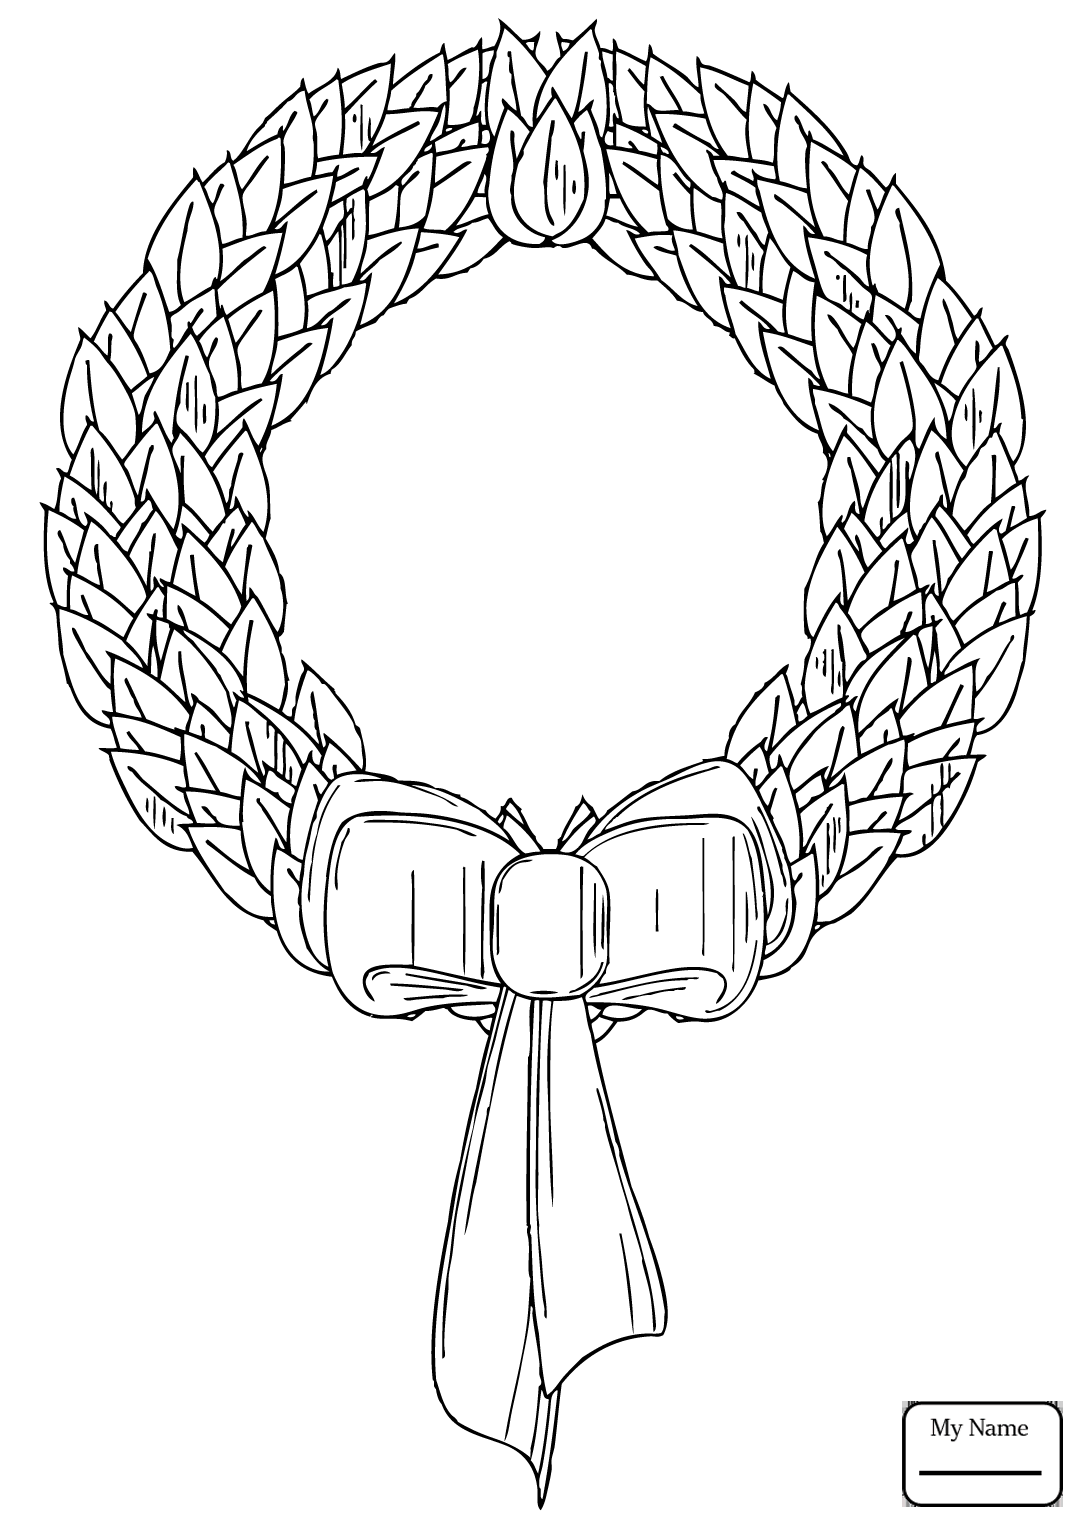 1081x1530 Coloring Pages For Kids Holidays Christmas Wreath With Red Bow